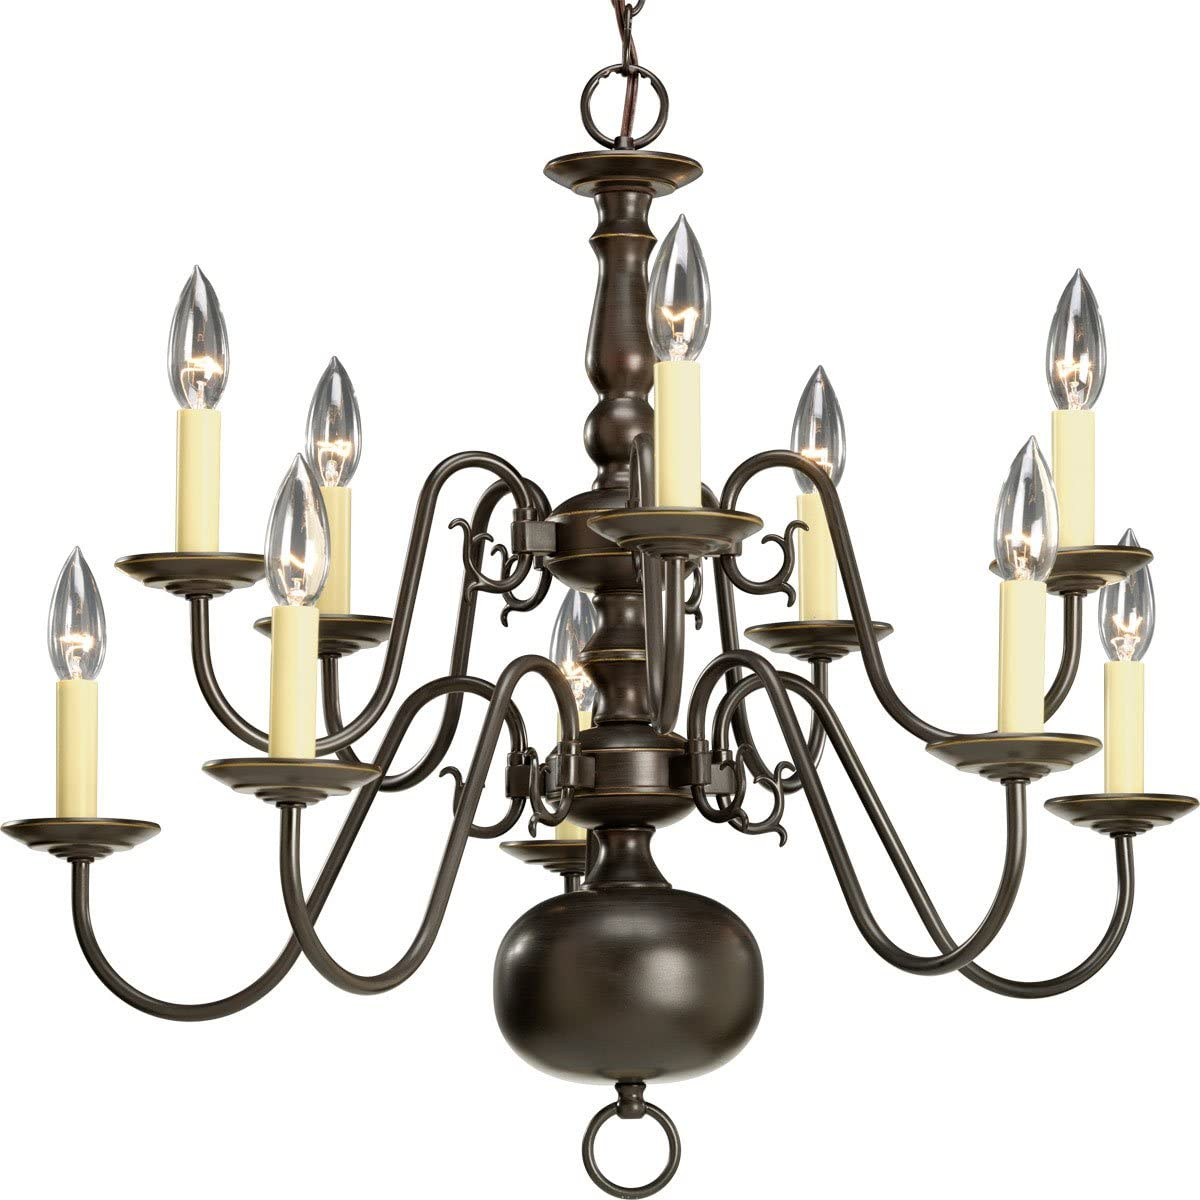 Progress Lighting P4358-20 Chandelier, 26-Inch Diameter x 23-Inch Height, Antique Bronze